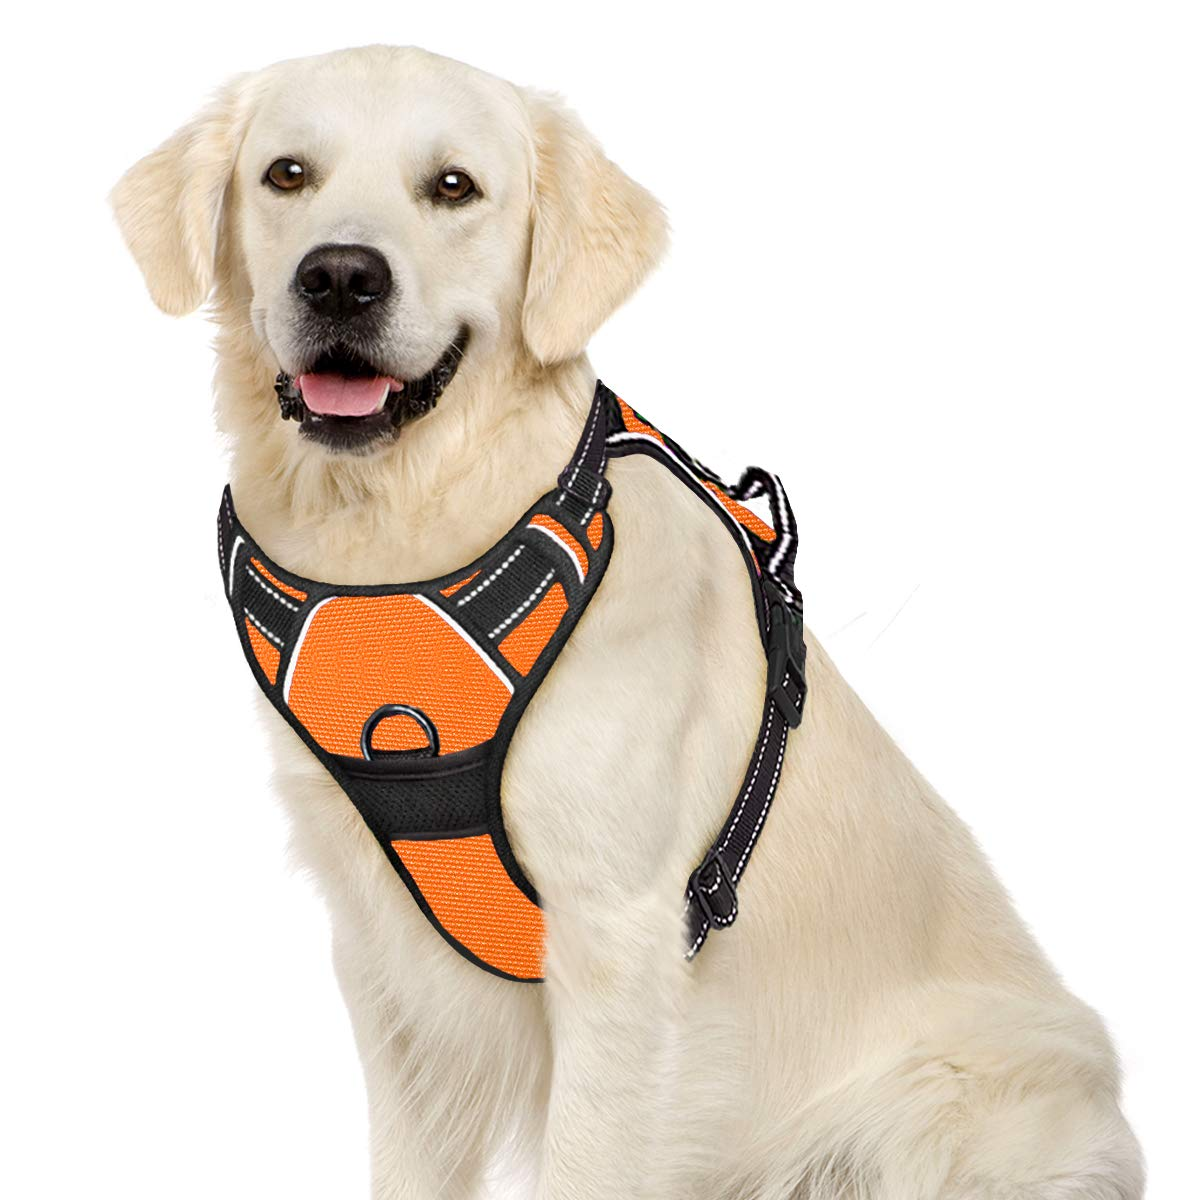 Pet Harness for Small Medium Large Dogs With Dog Rope Dog Harness No Pull Pet Harness 3M Reflective Adjustable Outdoor Pet Vest for Dogs